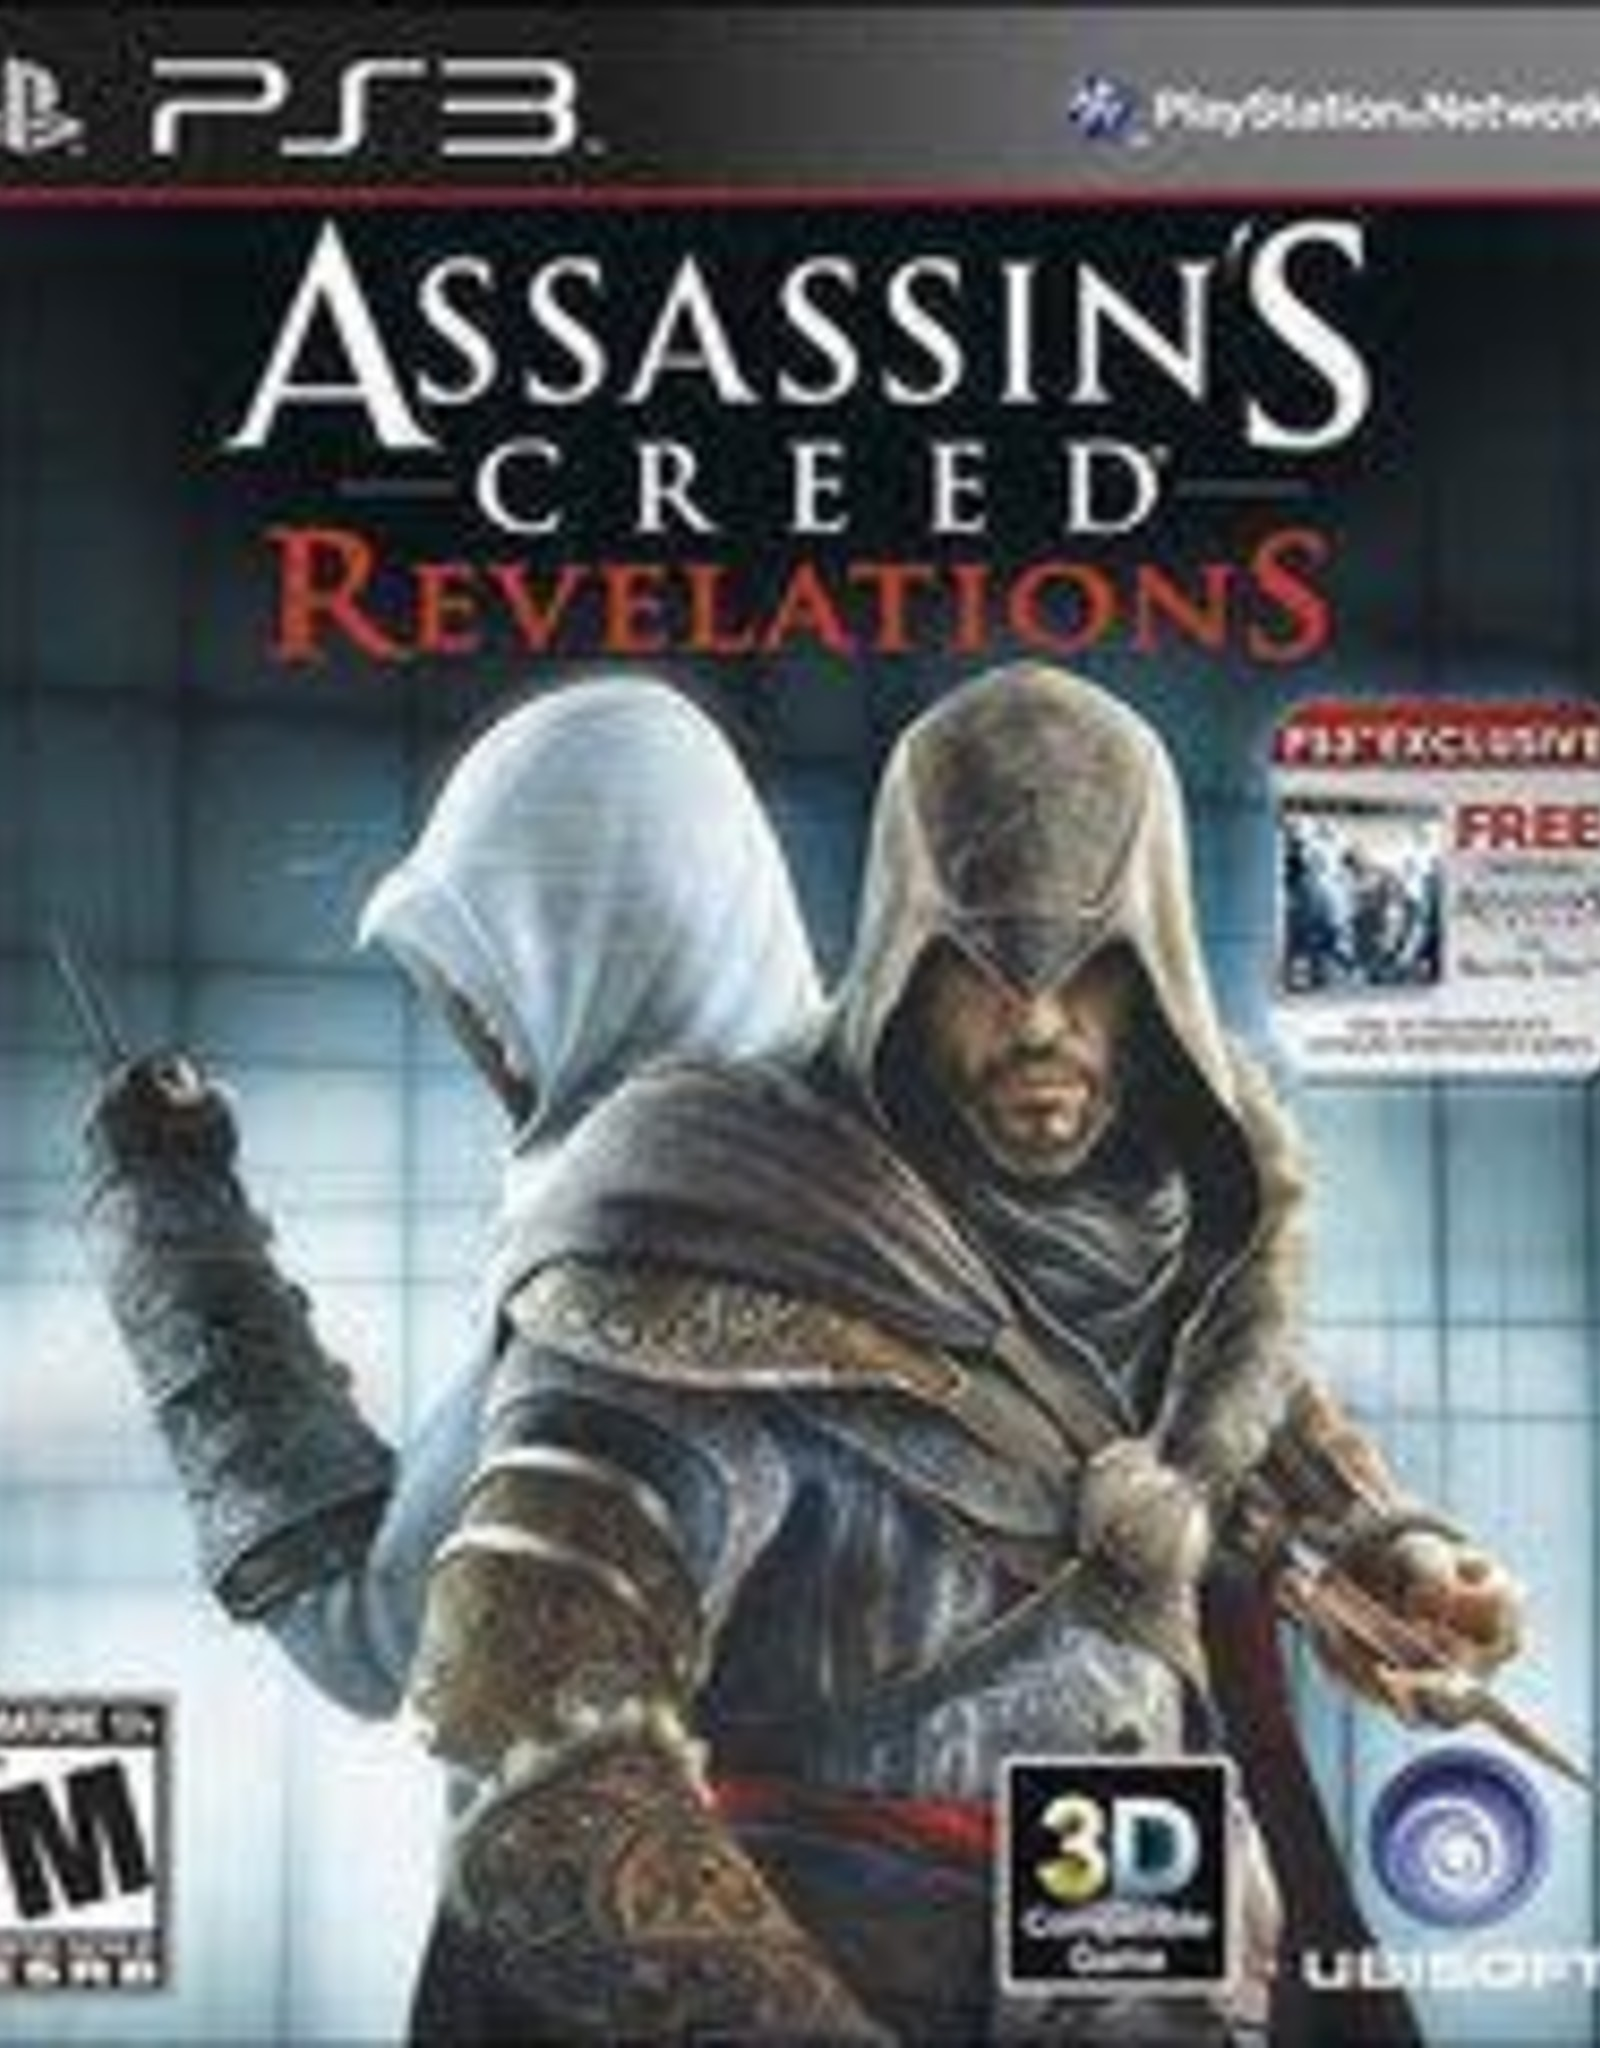 Playstation 3 Assassin's Creed Revelations